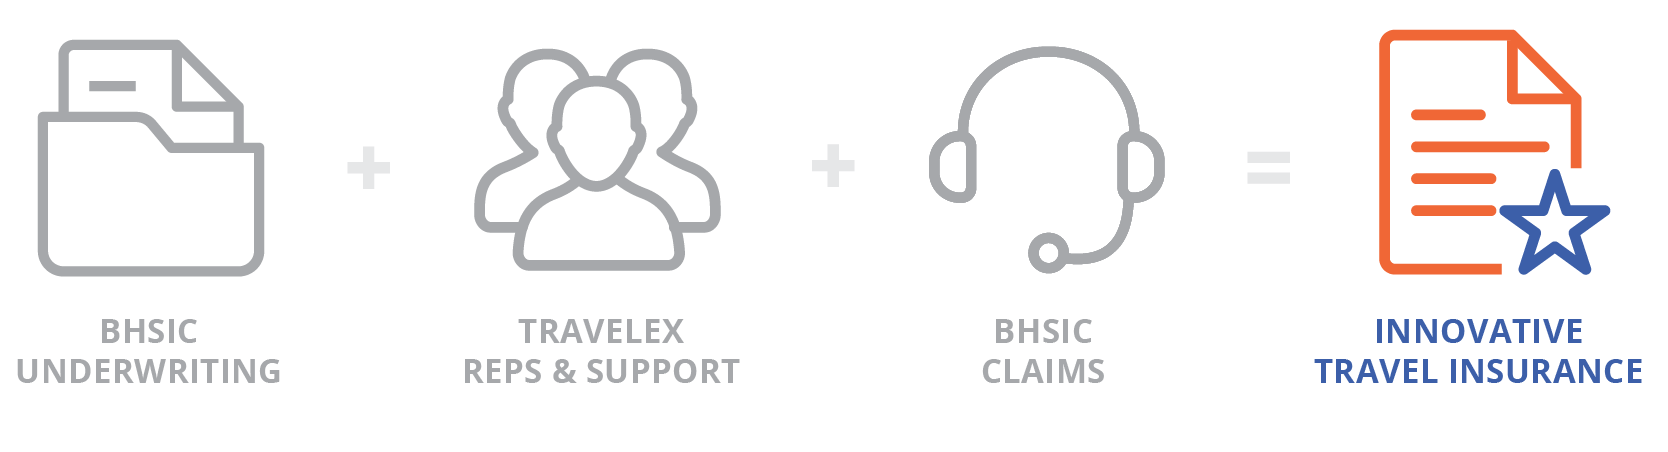 Illustration representing the BHTP and Travelex partnership